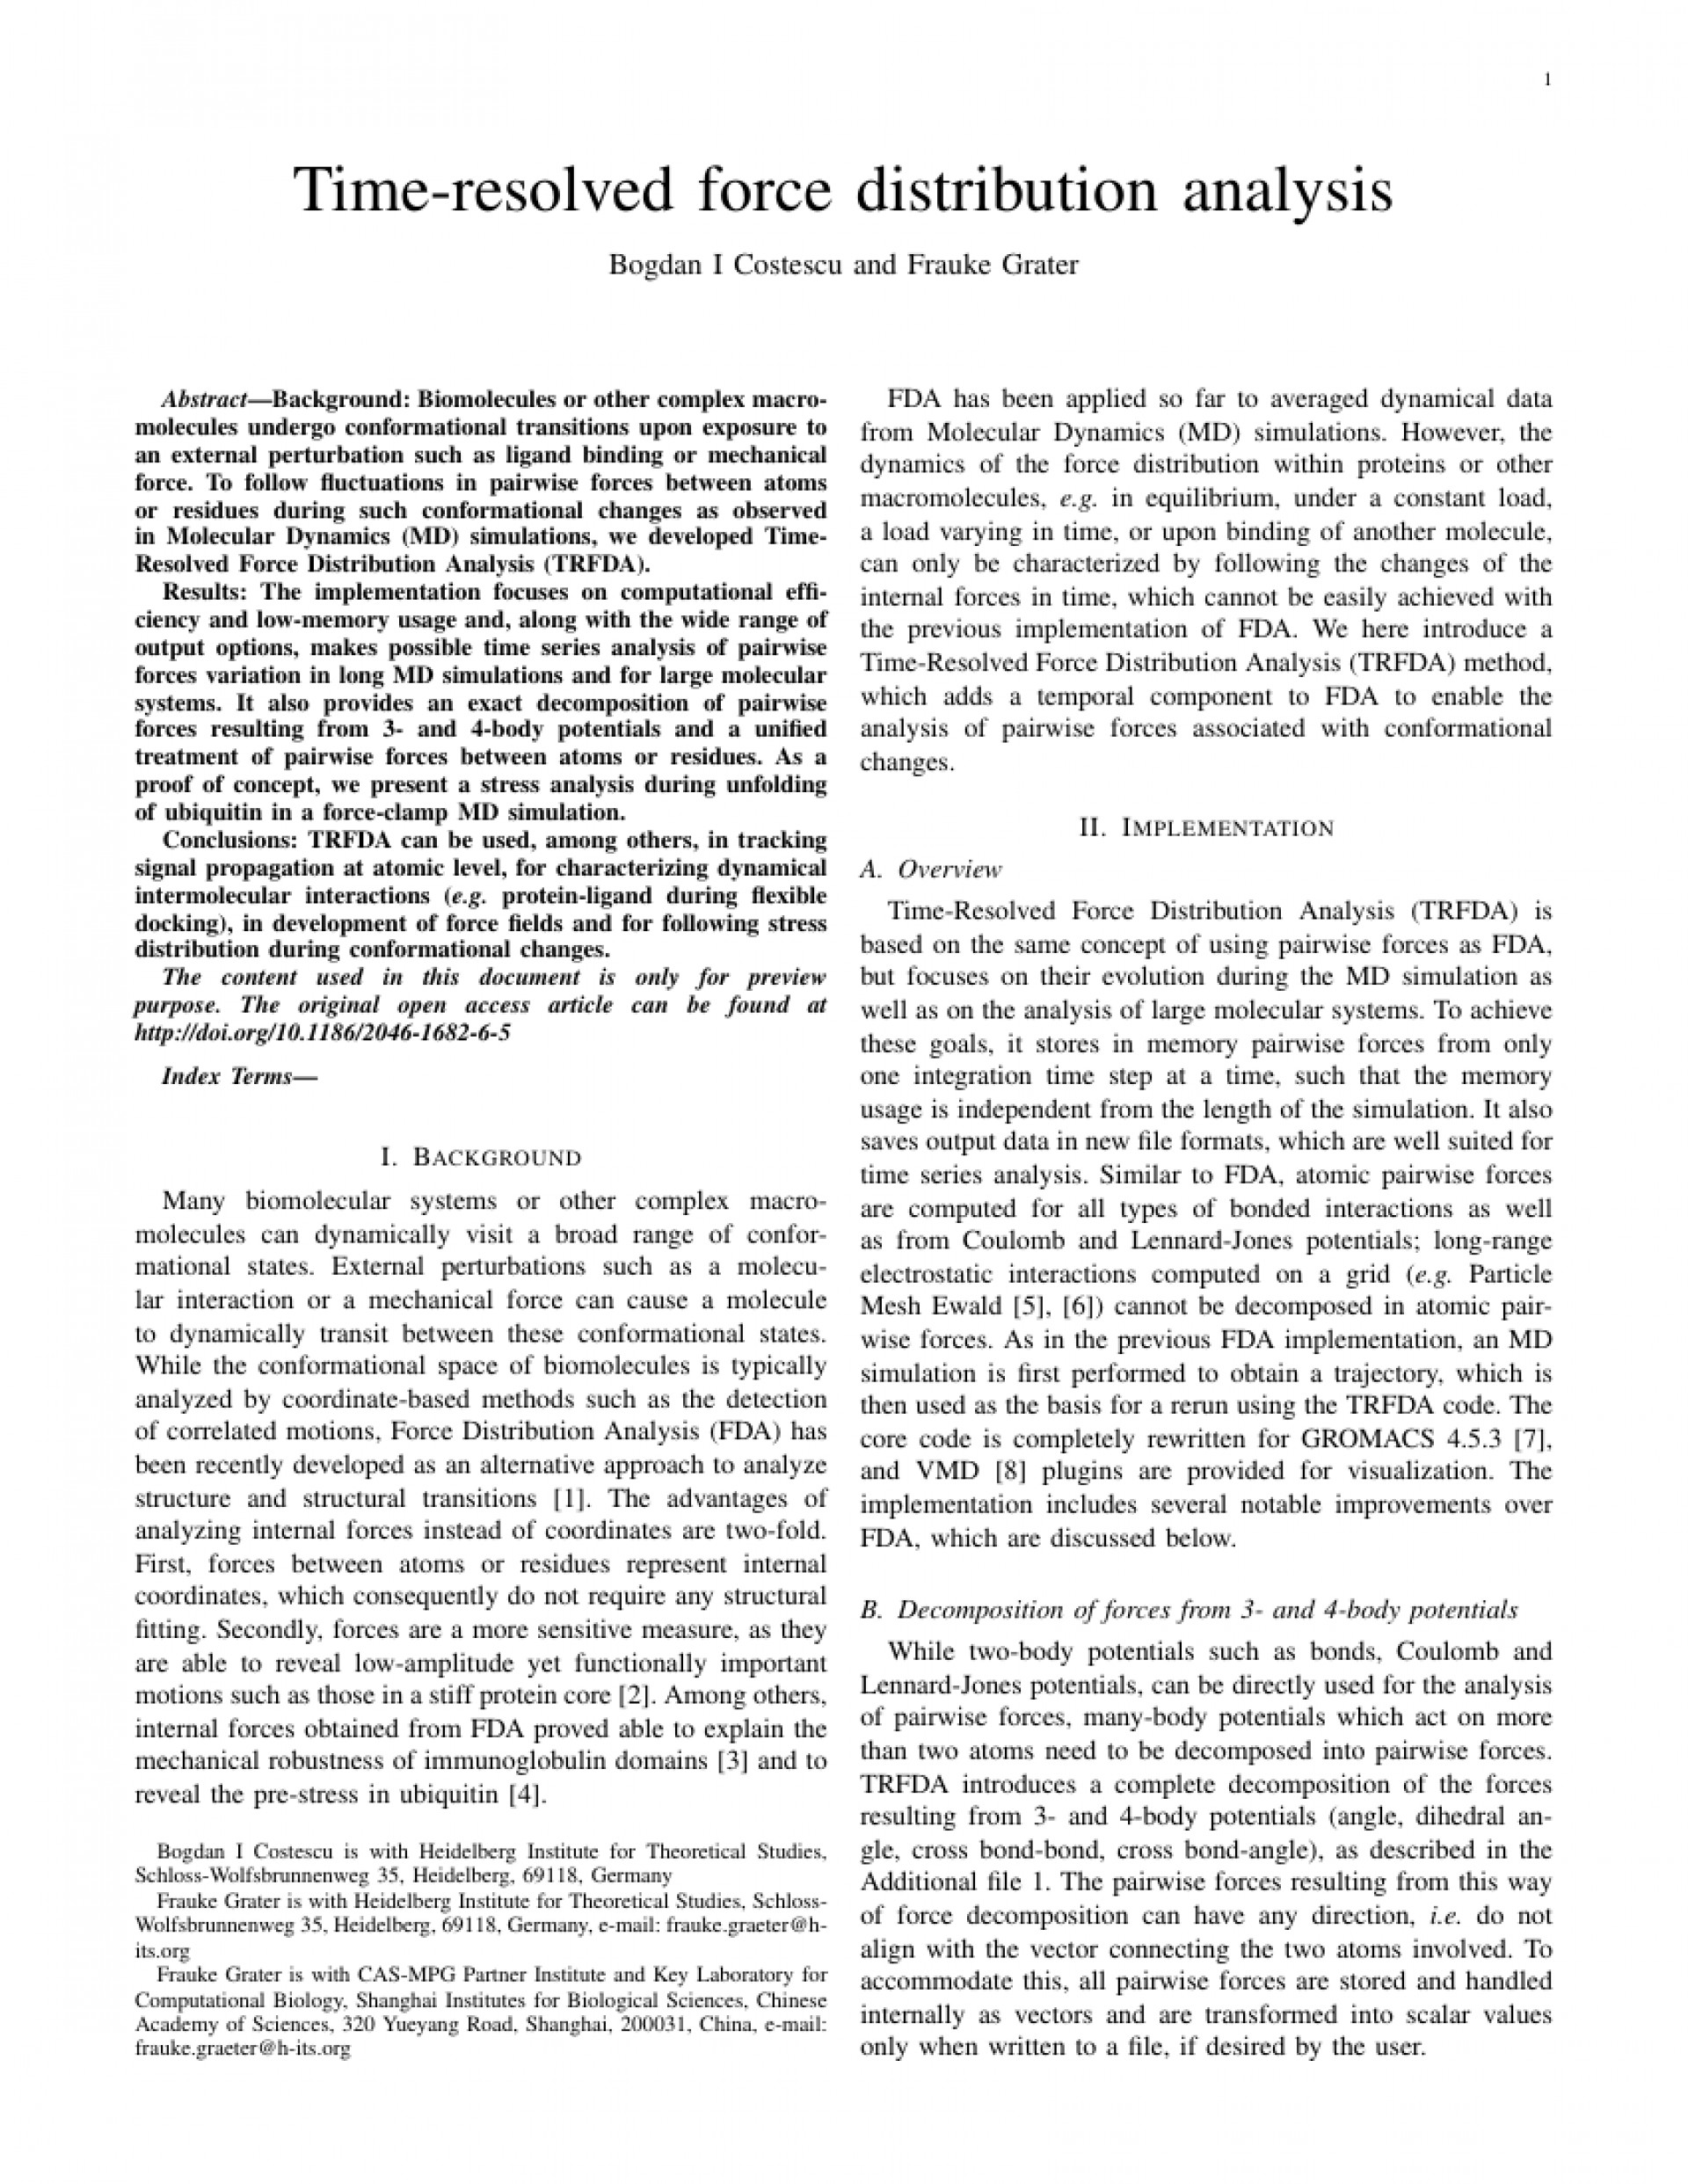 002 Output Ieee Researchs In Computer Science Unusual Research Papers 2017 1920